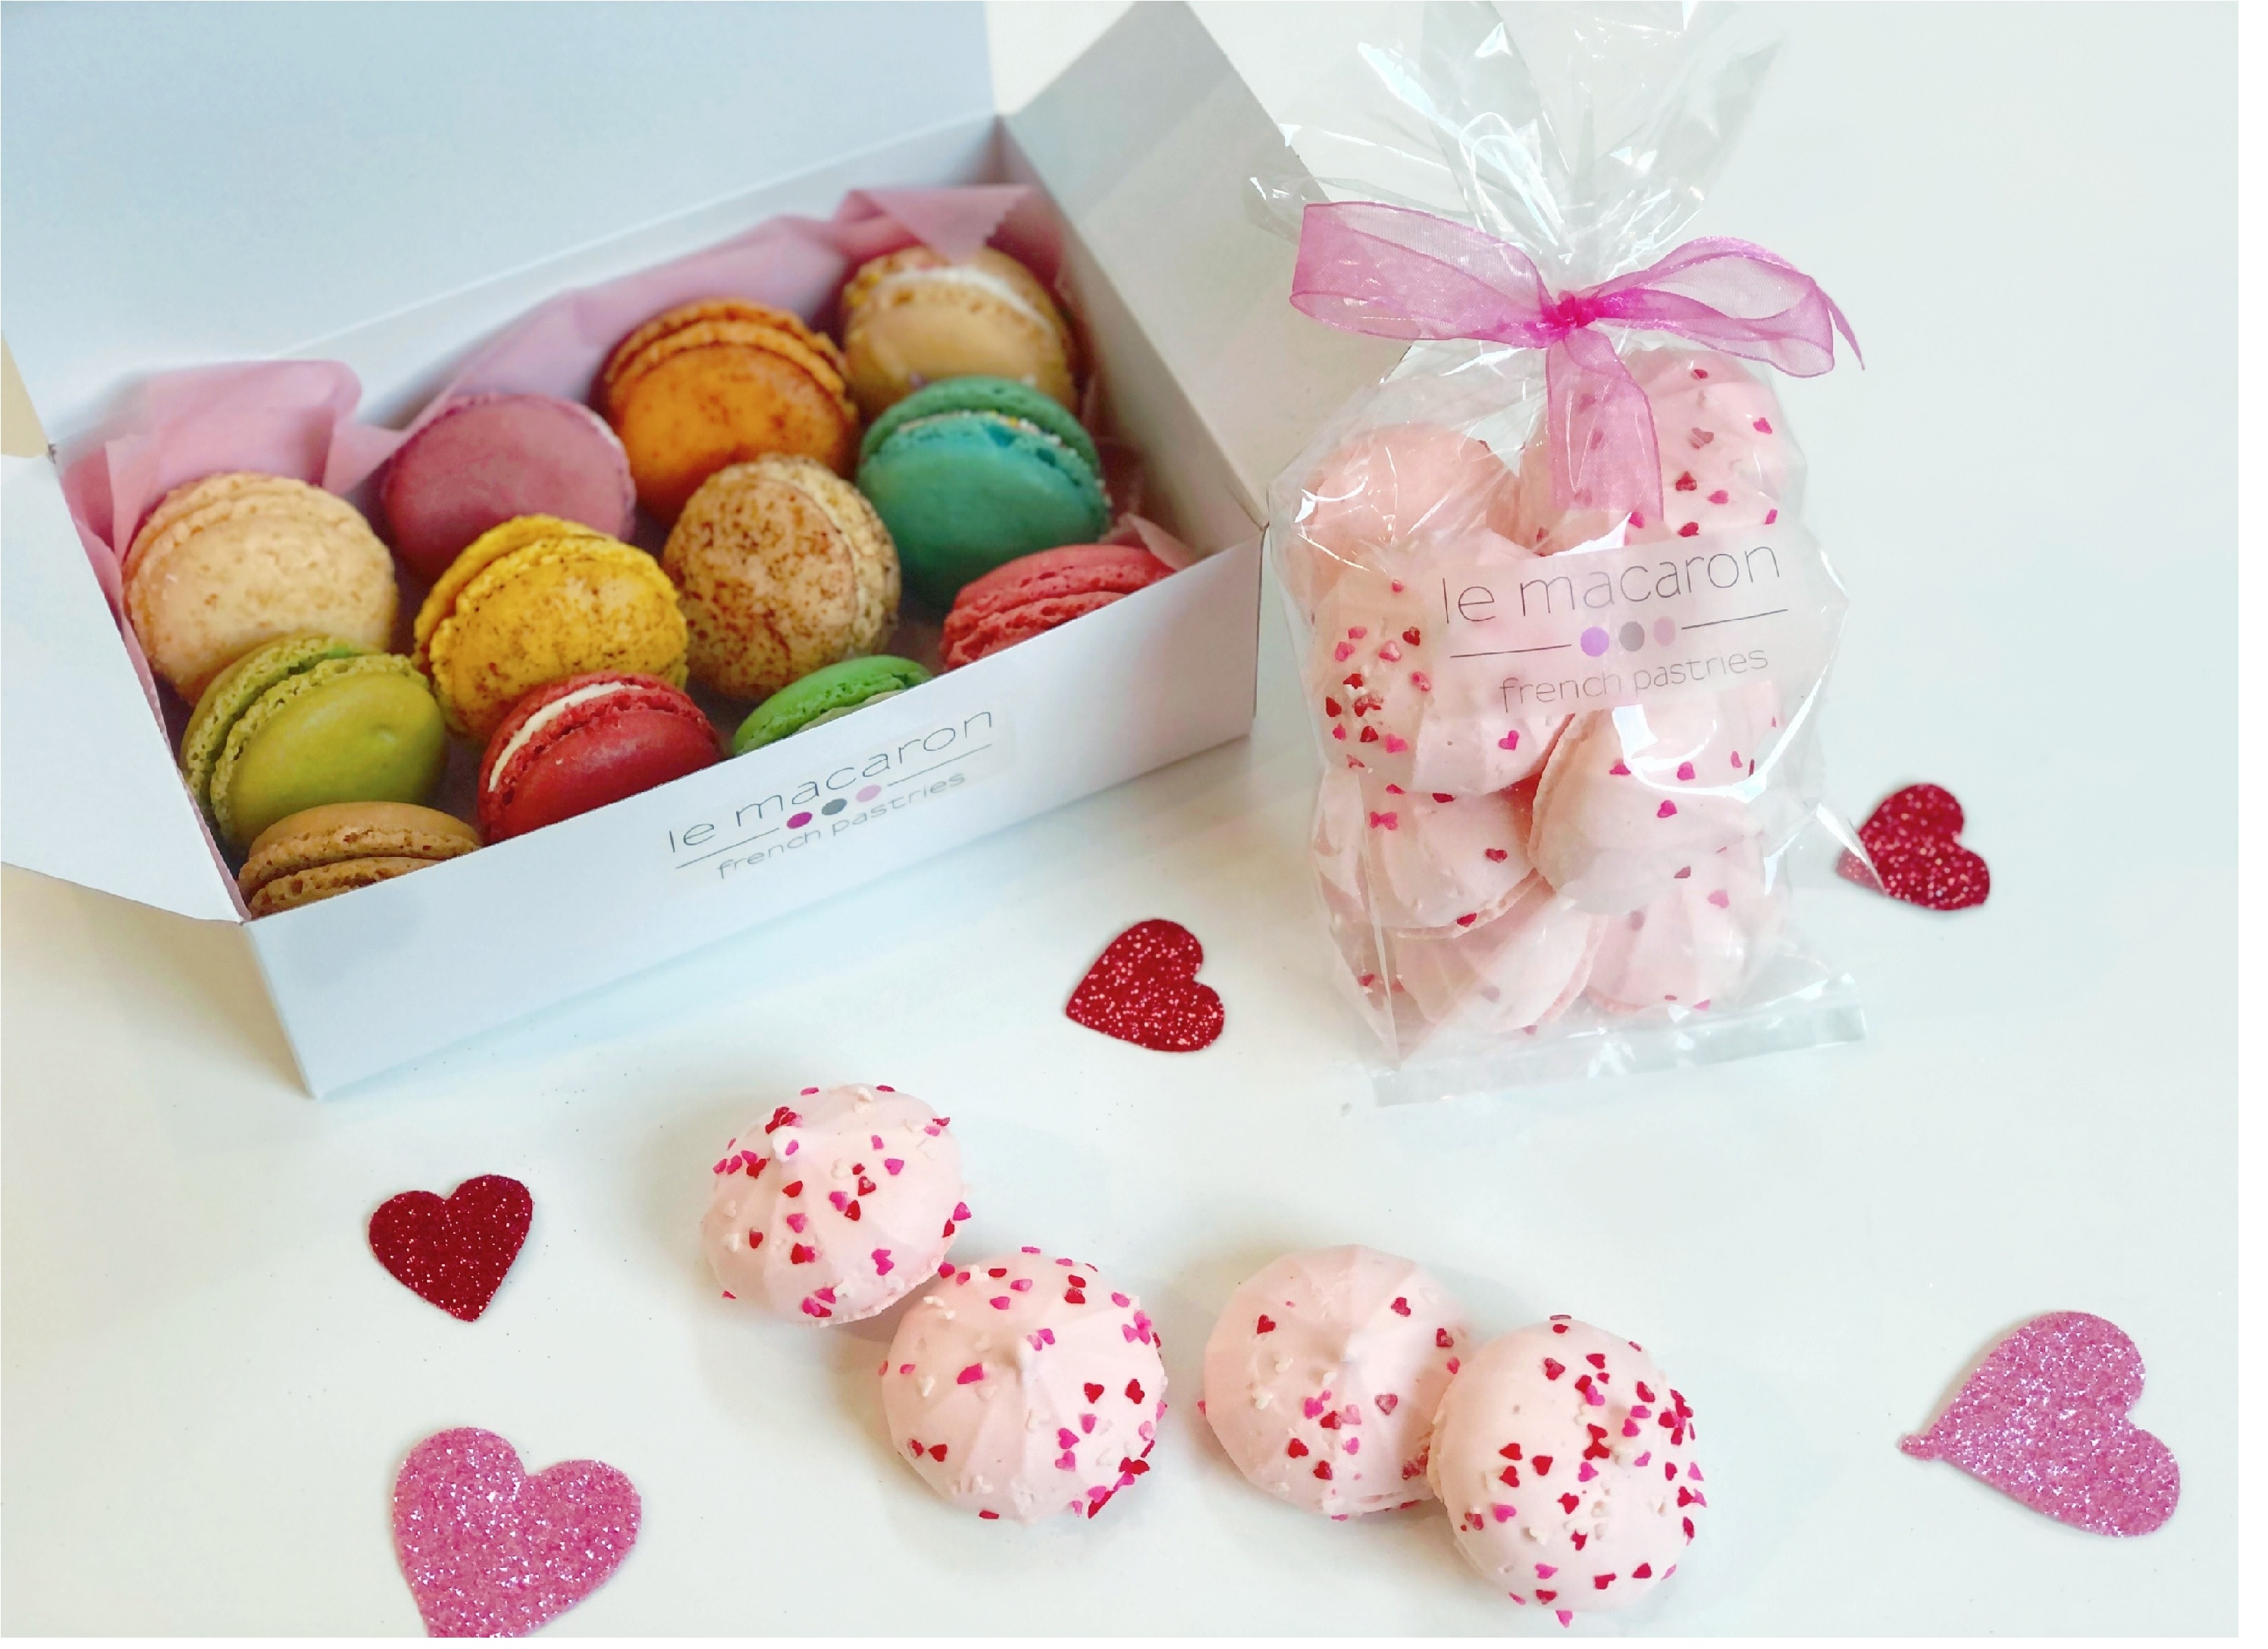 Buy 1 box 12 macarons, get one free small Valentines meringues bag from Le Macaron